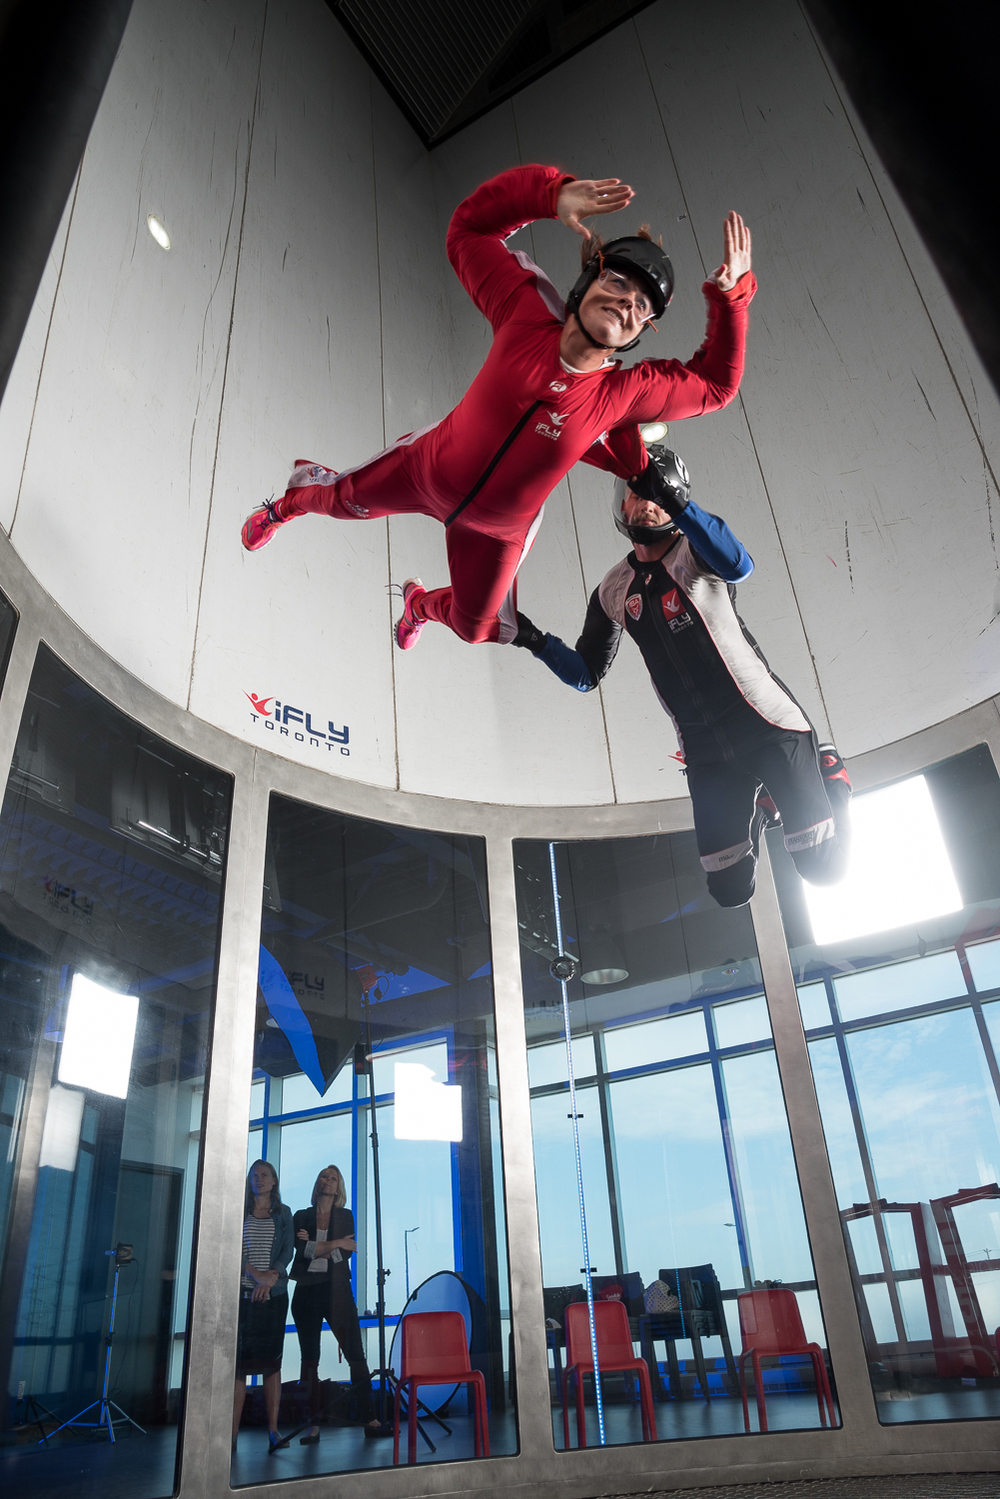 Dan Talevski Woodview Clinic iFly Toronto Fundraiser - Indoor Skydiving - Photo by Marek Michalek 20.jpg